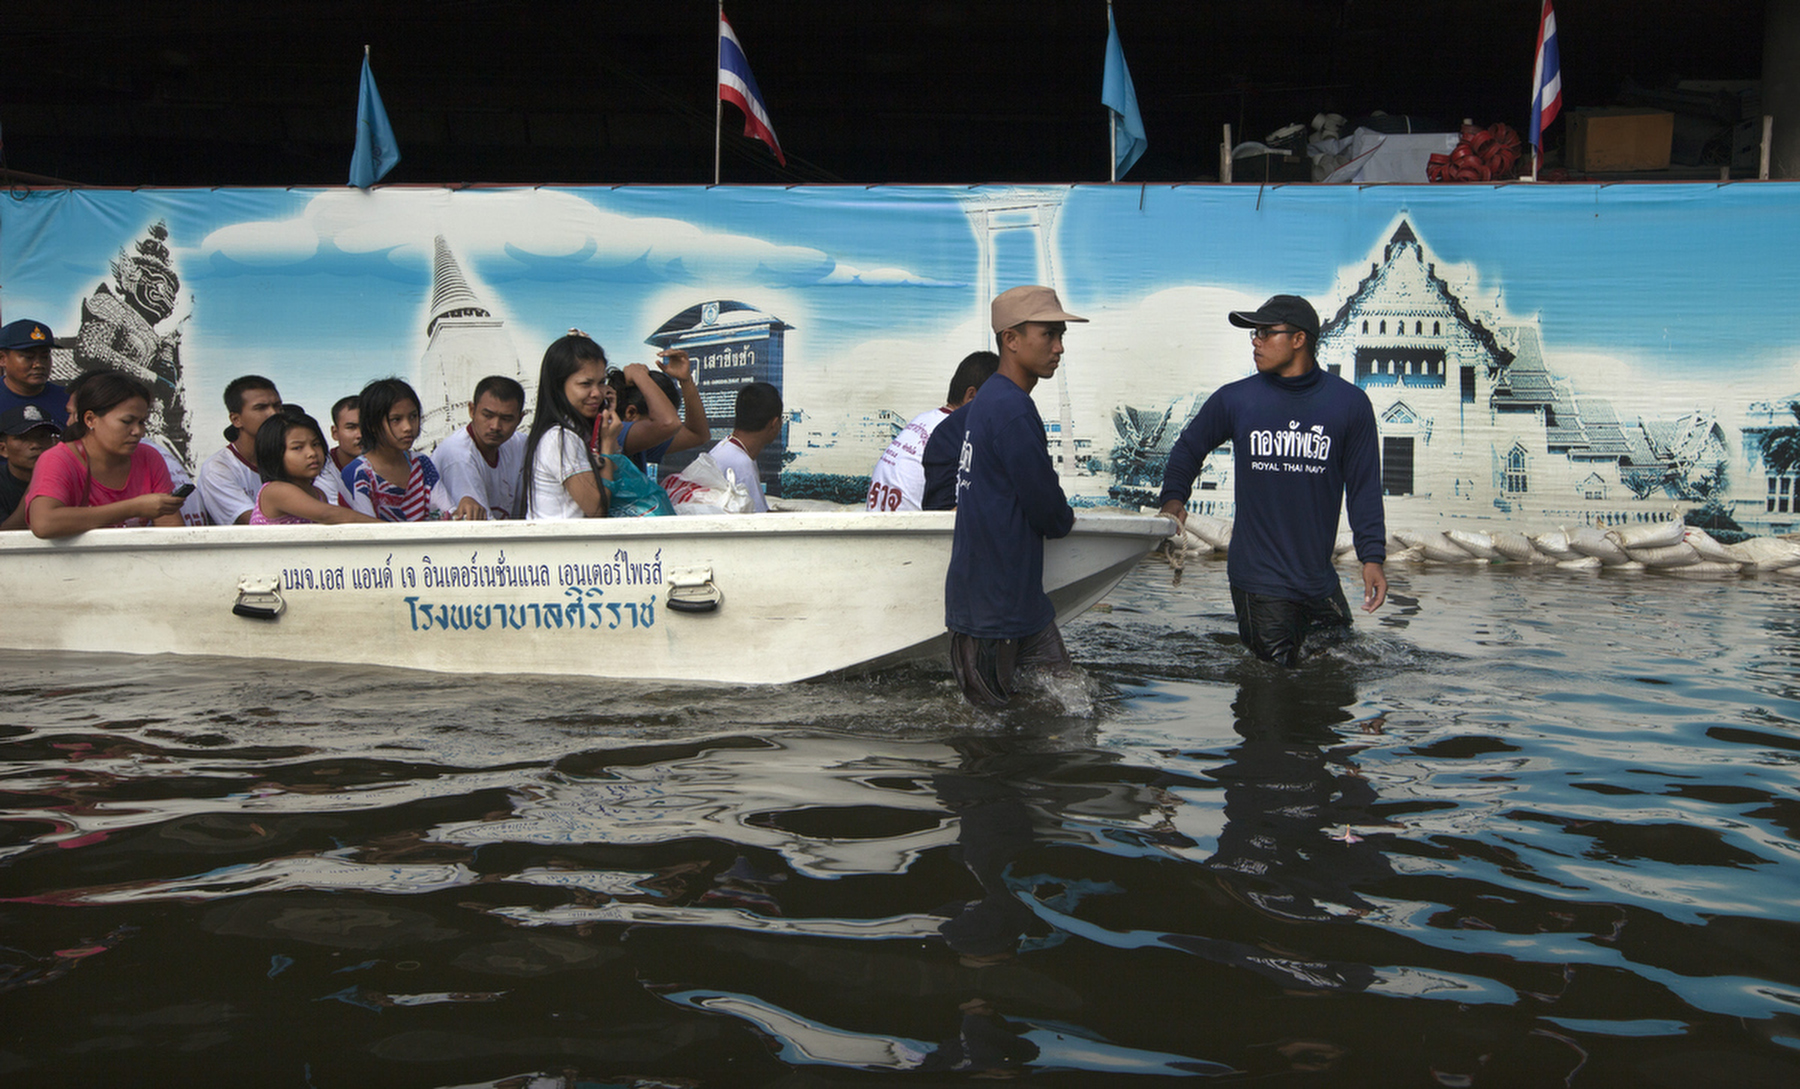 BANGKOK,THAILAND - OCTOBER 29: Thai military pull a boat full of people past a mural in a flooded neighborhood near the Chayo Praya river as rising waters threaten parts of the capitol city October 29, 2011 in Bangkok, Thailand. Hundreds of factories have been closed in the central Thai province of Ayutthaya and Nonthaburi. Thailand is experiencing the worst flooding in over 50 years which has affected more than nine million people. Over 400 people have died in flood-related incidents since late July according to the Department of Disaster Prevention and Mitigation.(Photo by Paula Bronstein /Getty Images)